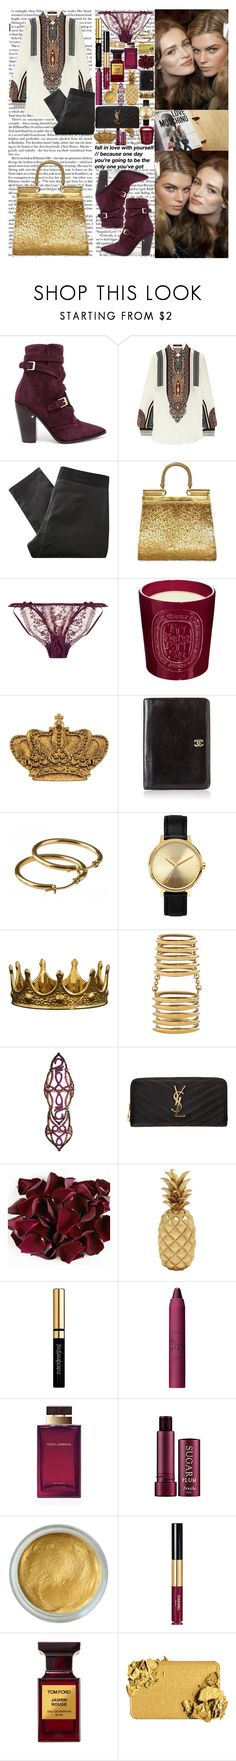 """""""Girl, if it's done right Well you know it's got to be, something wonderful to me Oh honey now girl, give it one night If you just give it a chance, loving you is not my plan Cause I know one day you'll see All the things that we can be"""" by labelsoflove ❤ liked on Polyvore featuring Laurence Dacade, Etro, Surface To Air, Dolce&Gabbana, Agent Provocateur, Diptyque, Chanel, Nixon, Shaun Leane and Dionea Orcini"""